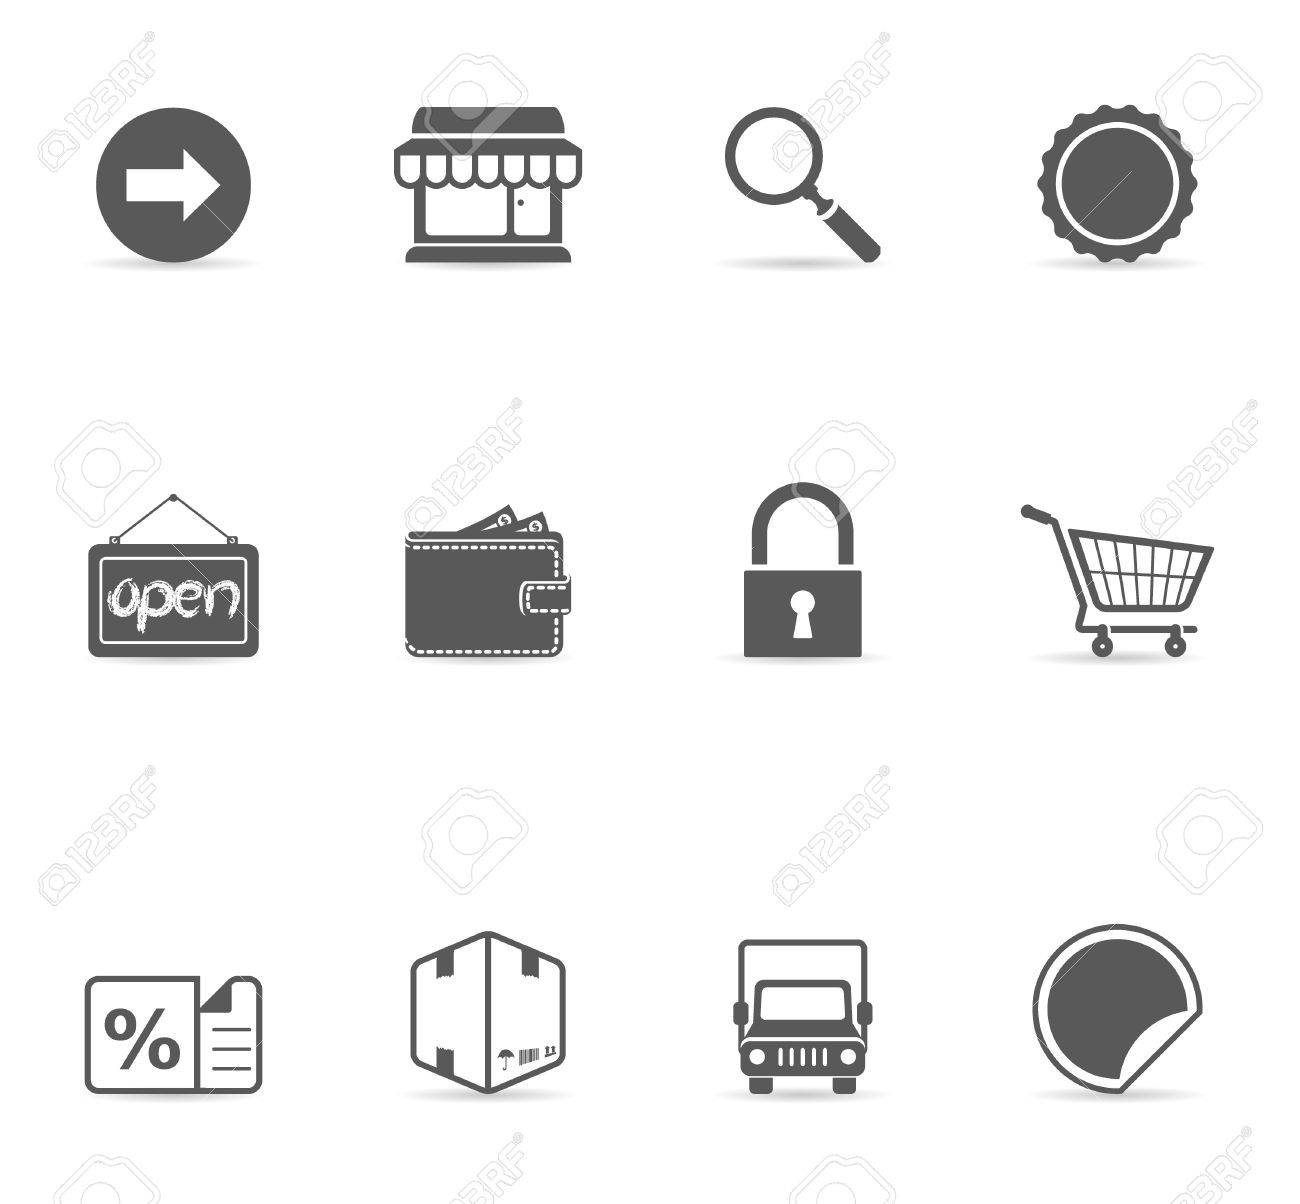 Ecommerce icon set in single color. EPS 10 with transparent shadow placed on separate layer. No spot color used. AI, PDF and transparent PNG of each icon included.